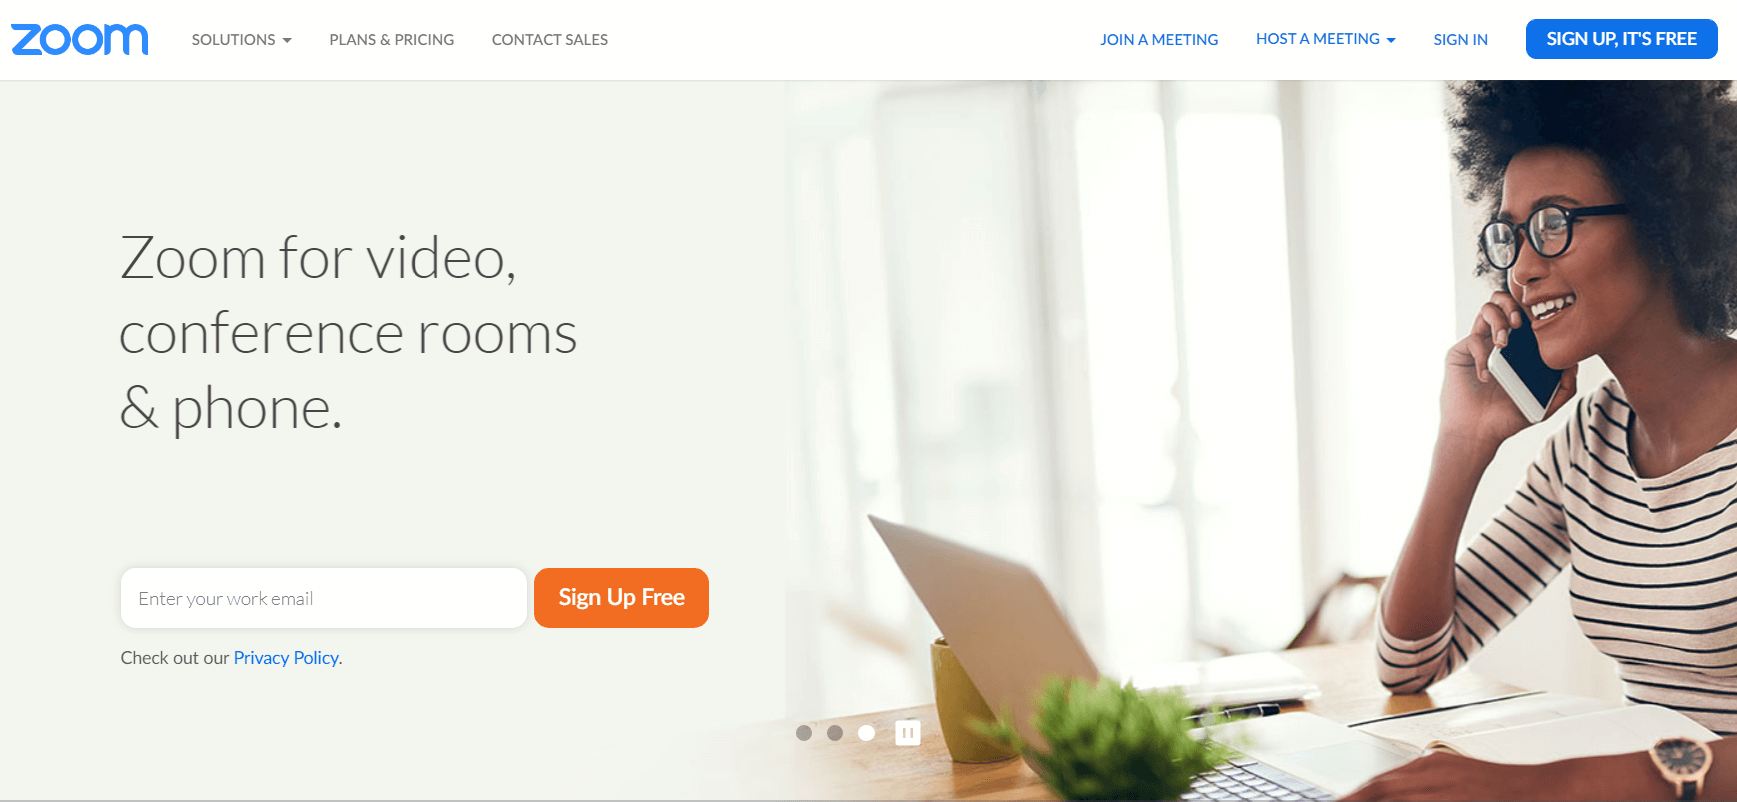 Zoom landing page